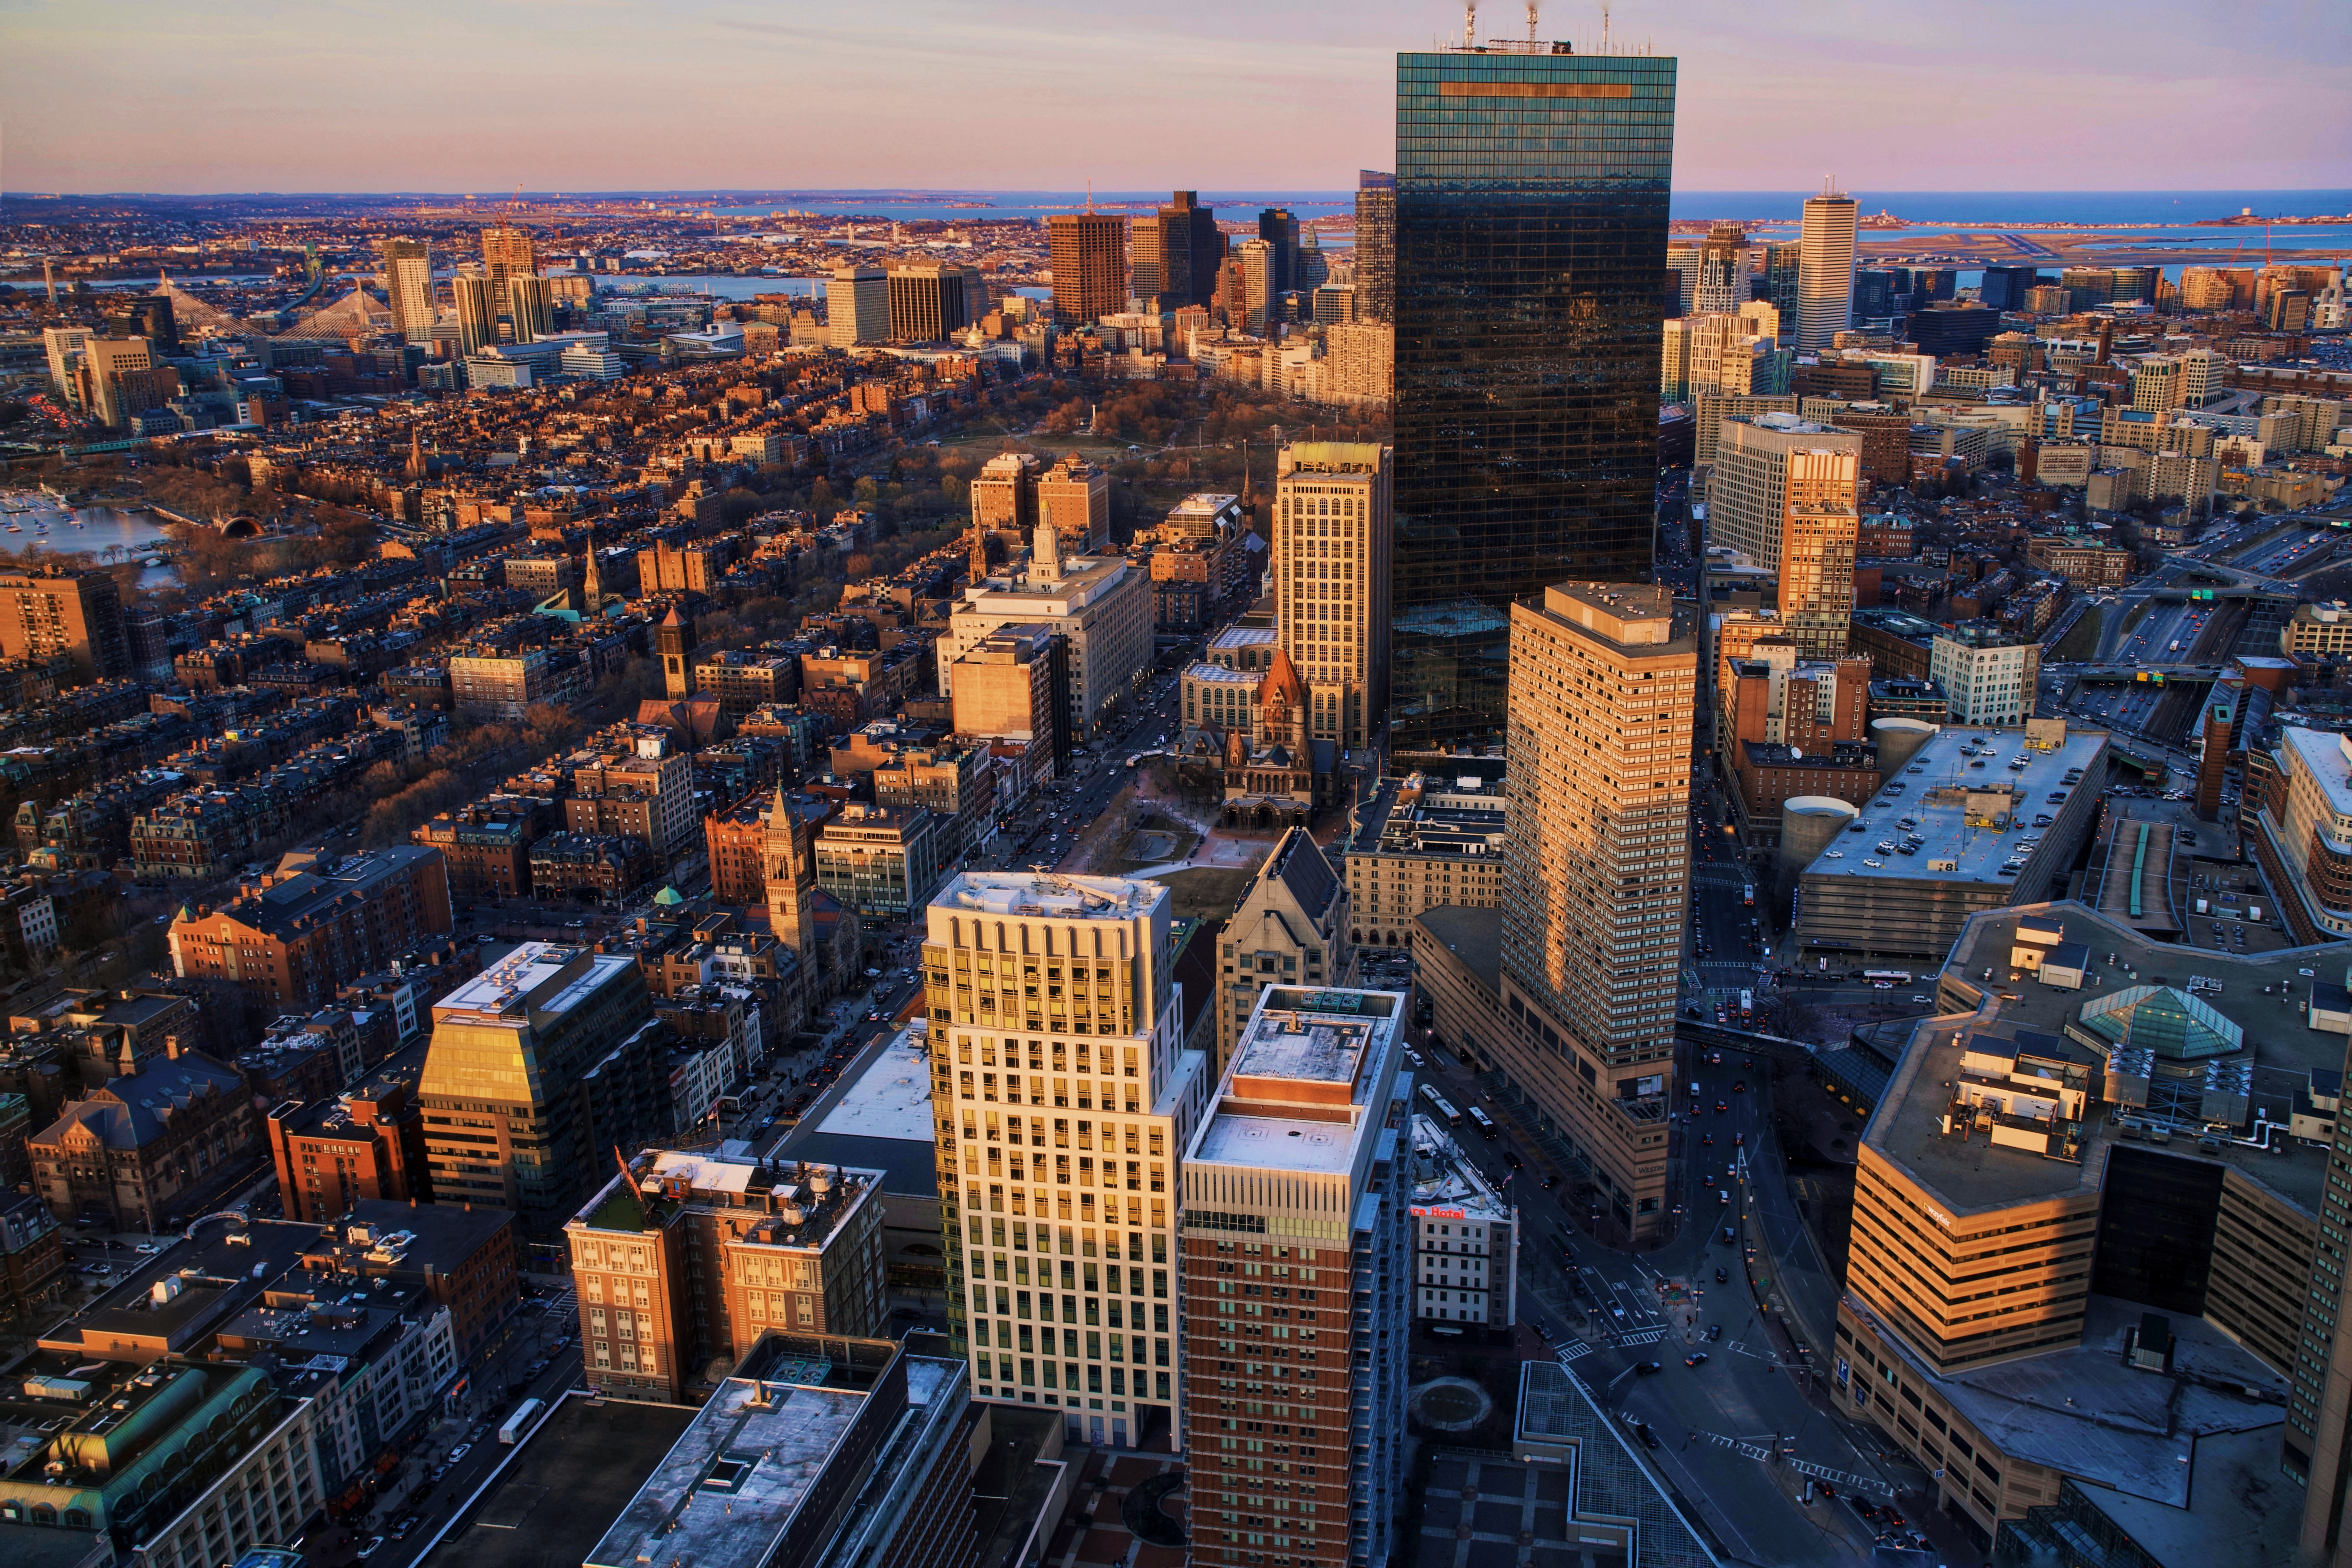 An aerial shot of the Boston skyline and the region beyond at sunset.